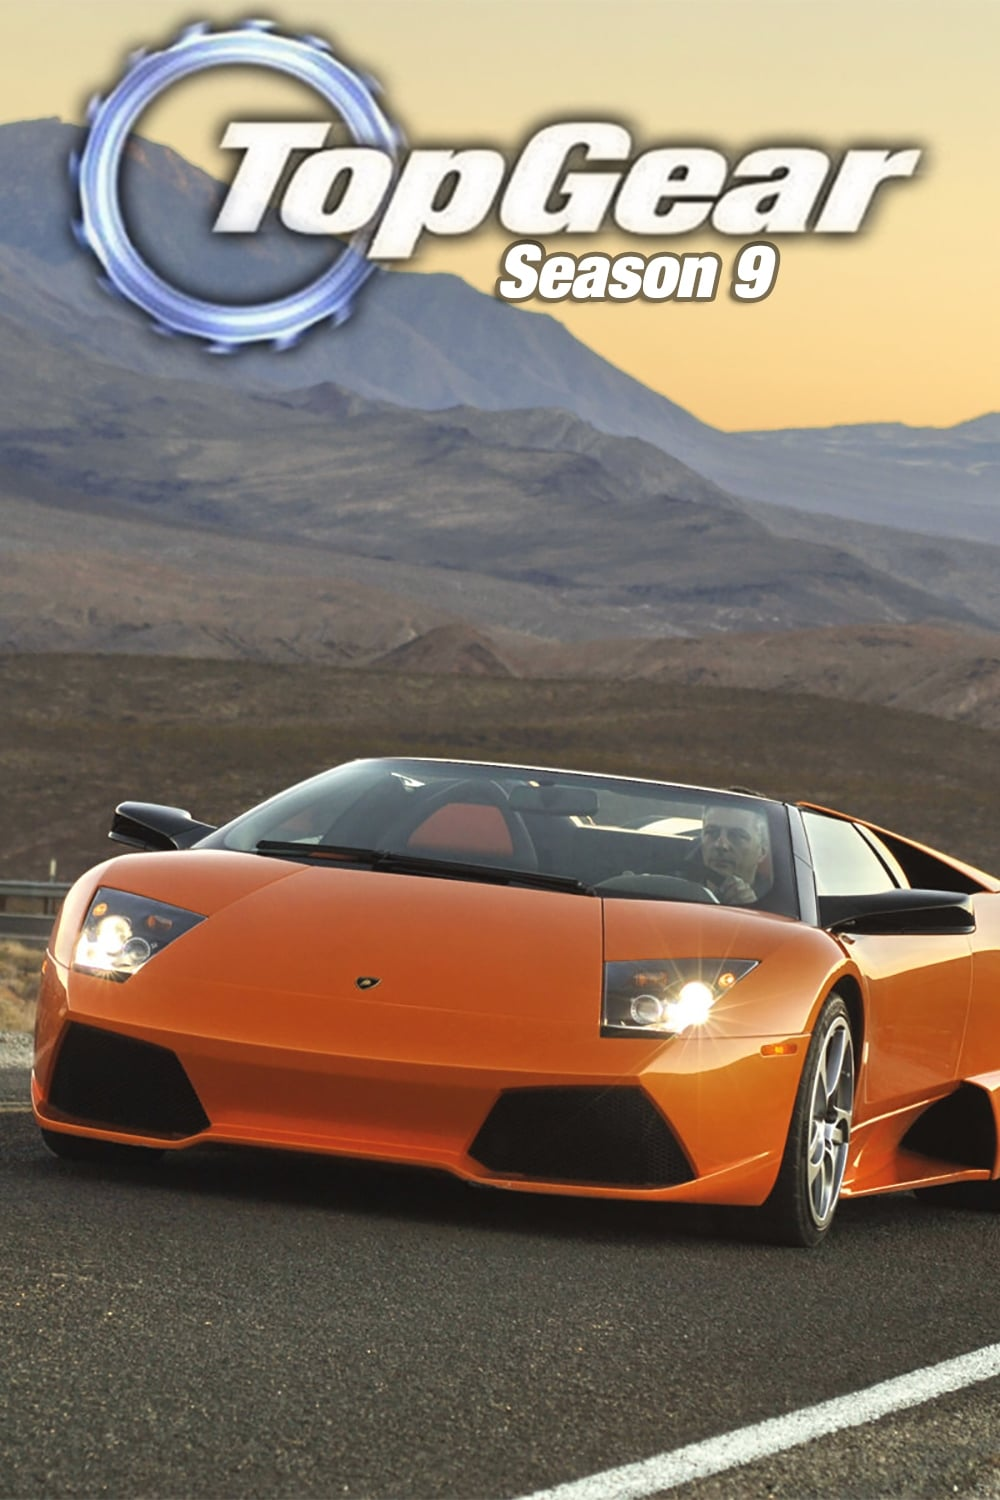 Top Gear Season 9